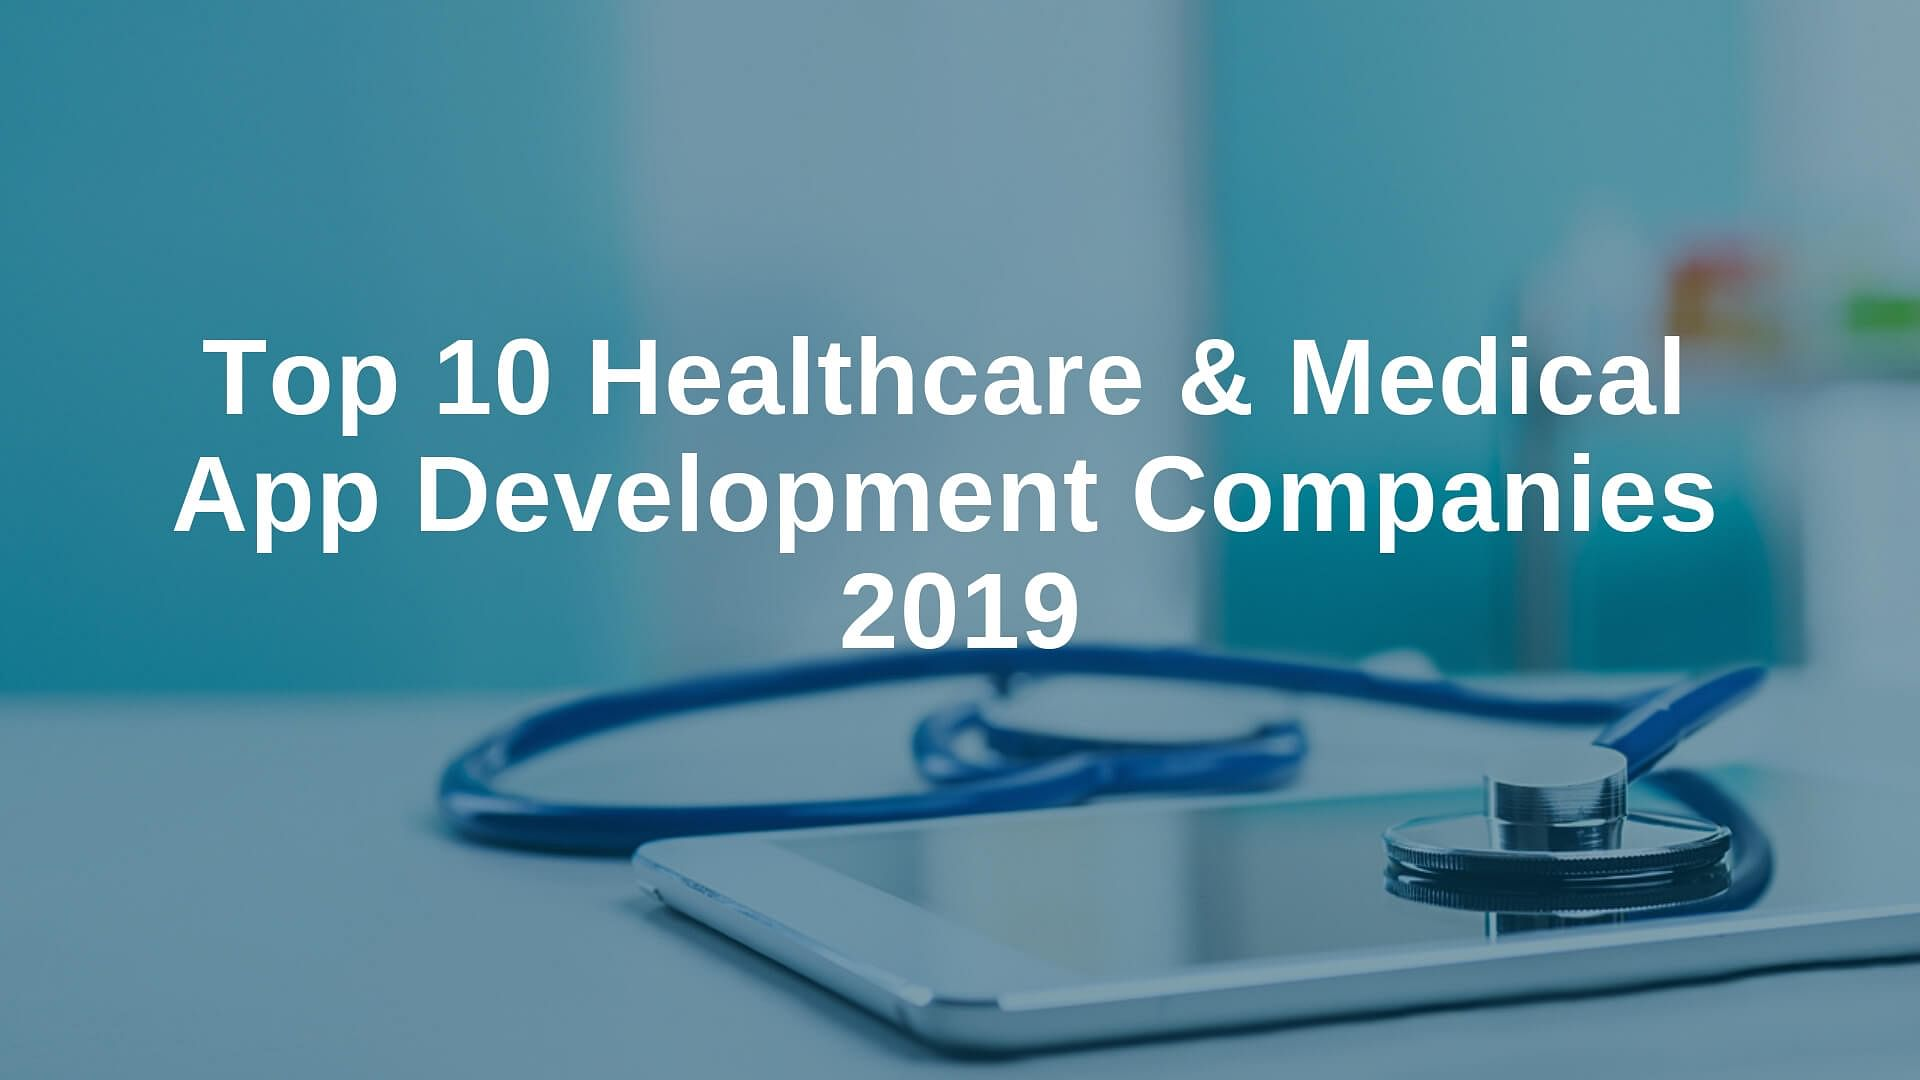 Top 10 Healthcare App Development Companies 2019